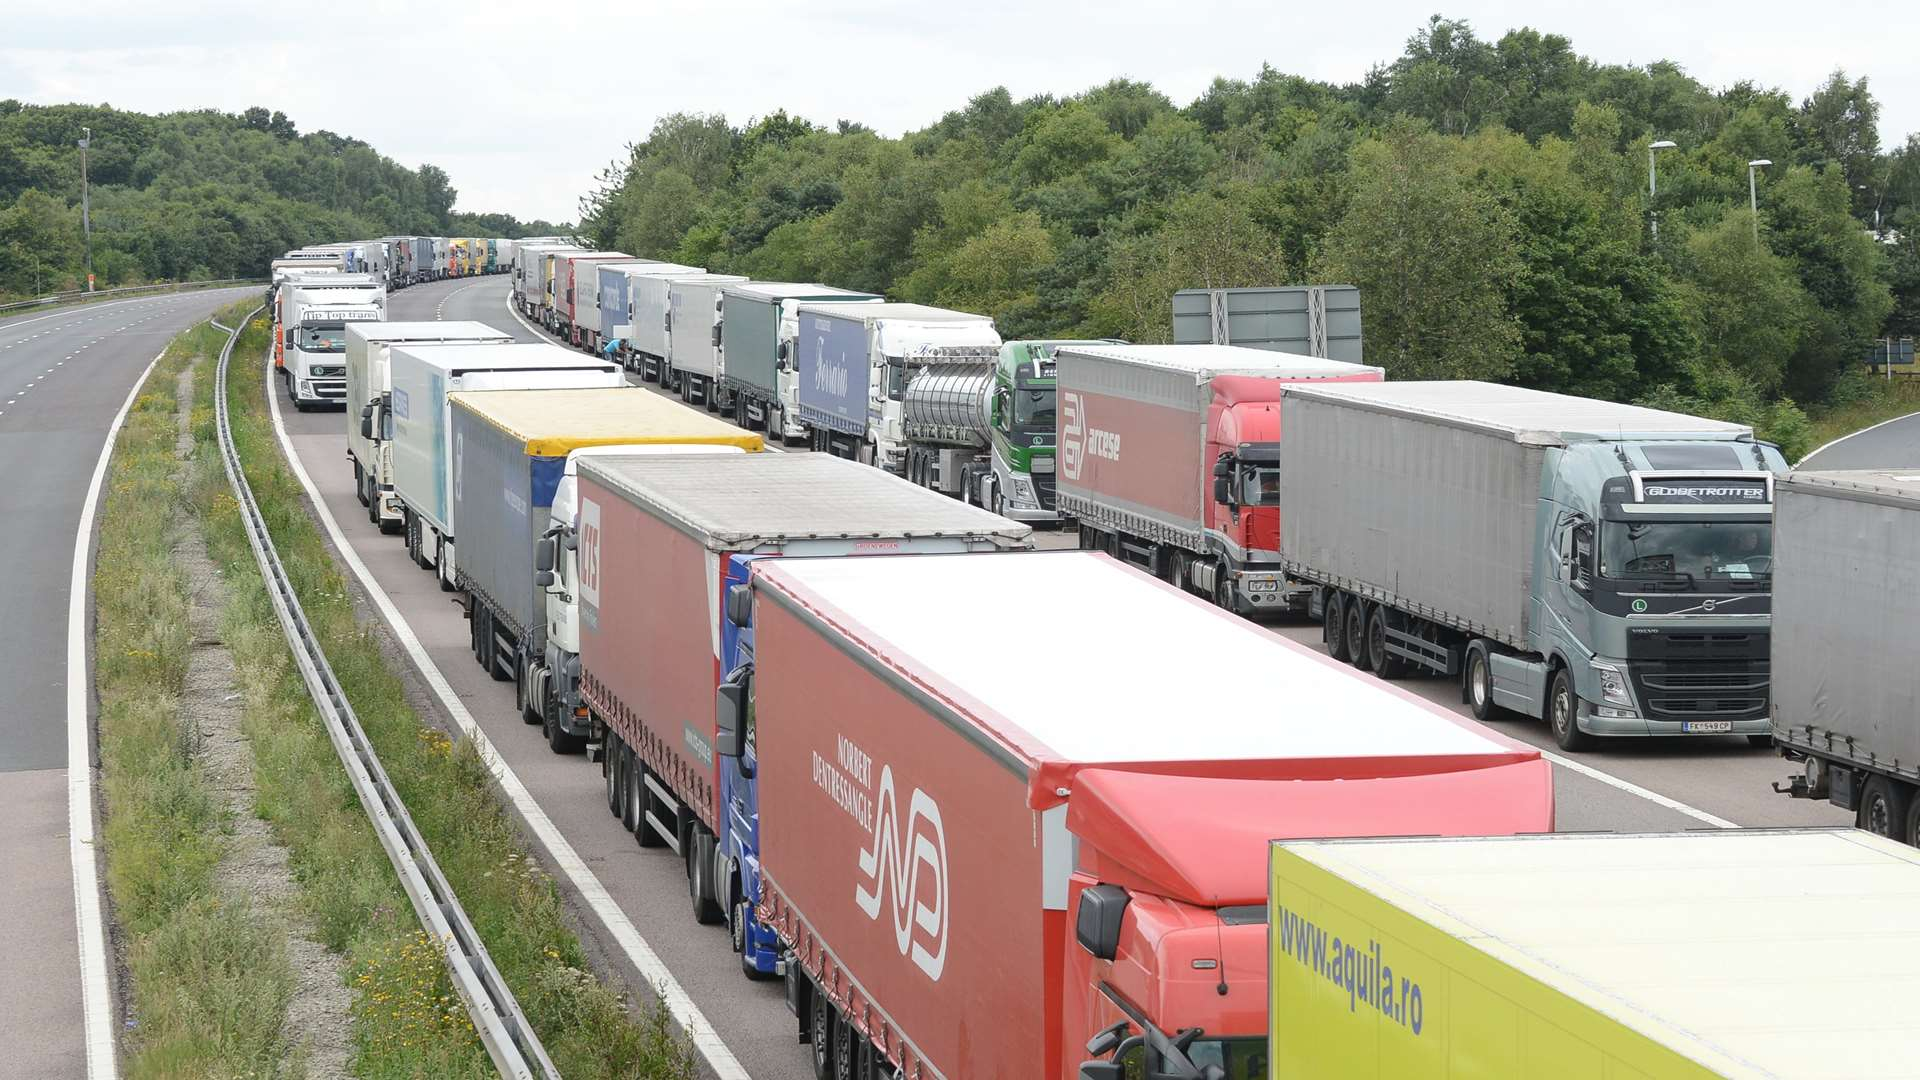 Operation Stack on the M20, July 2015